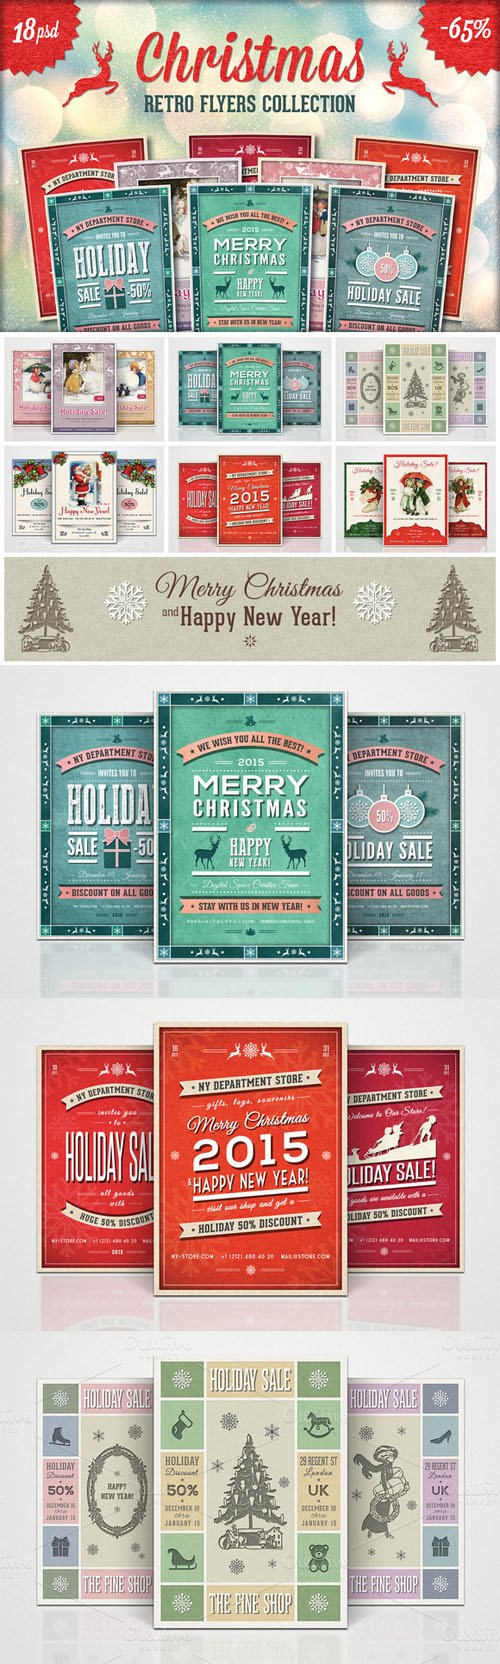 18 Retro Christmas Flyers Collection - CM 18344